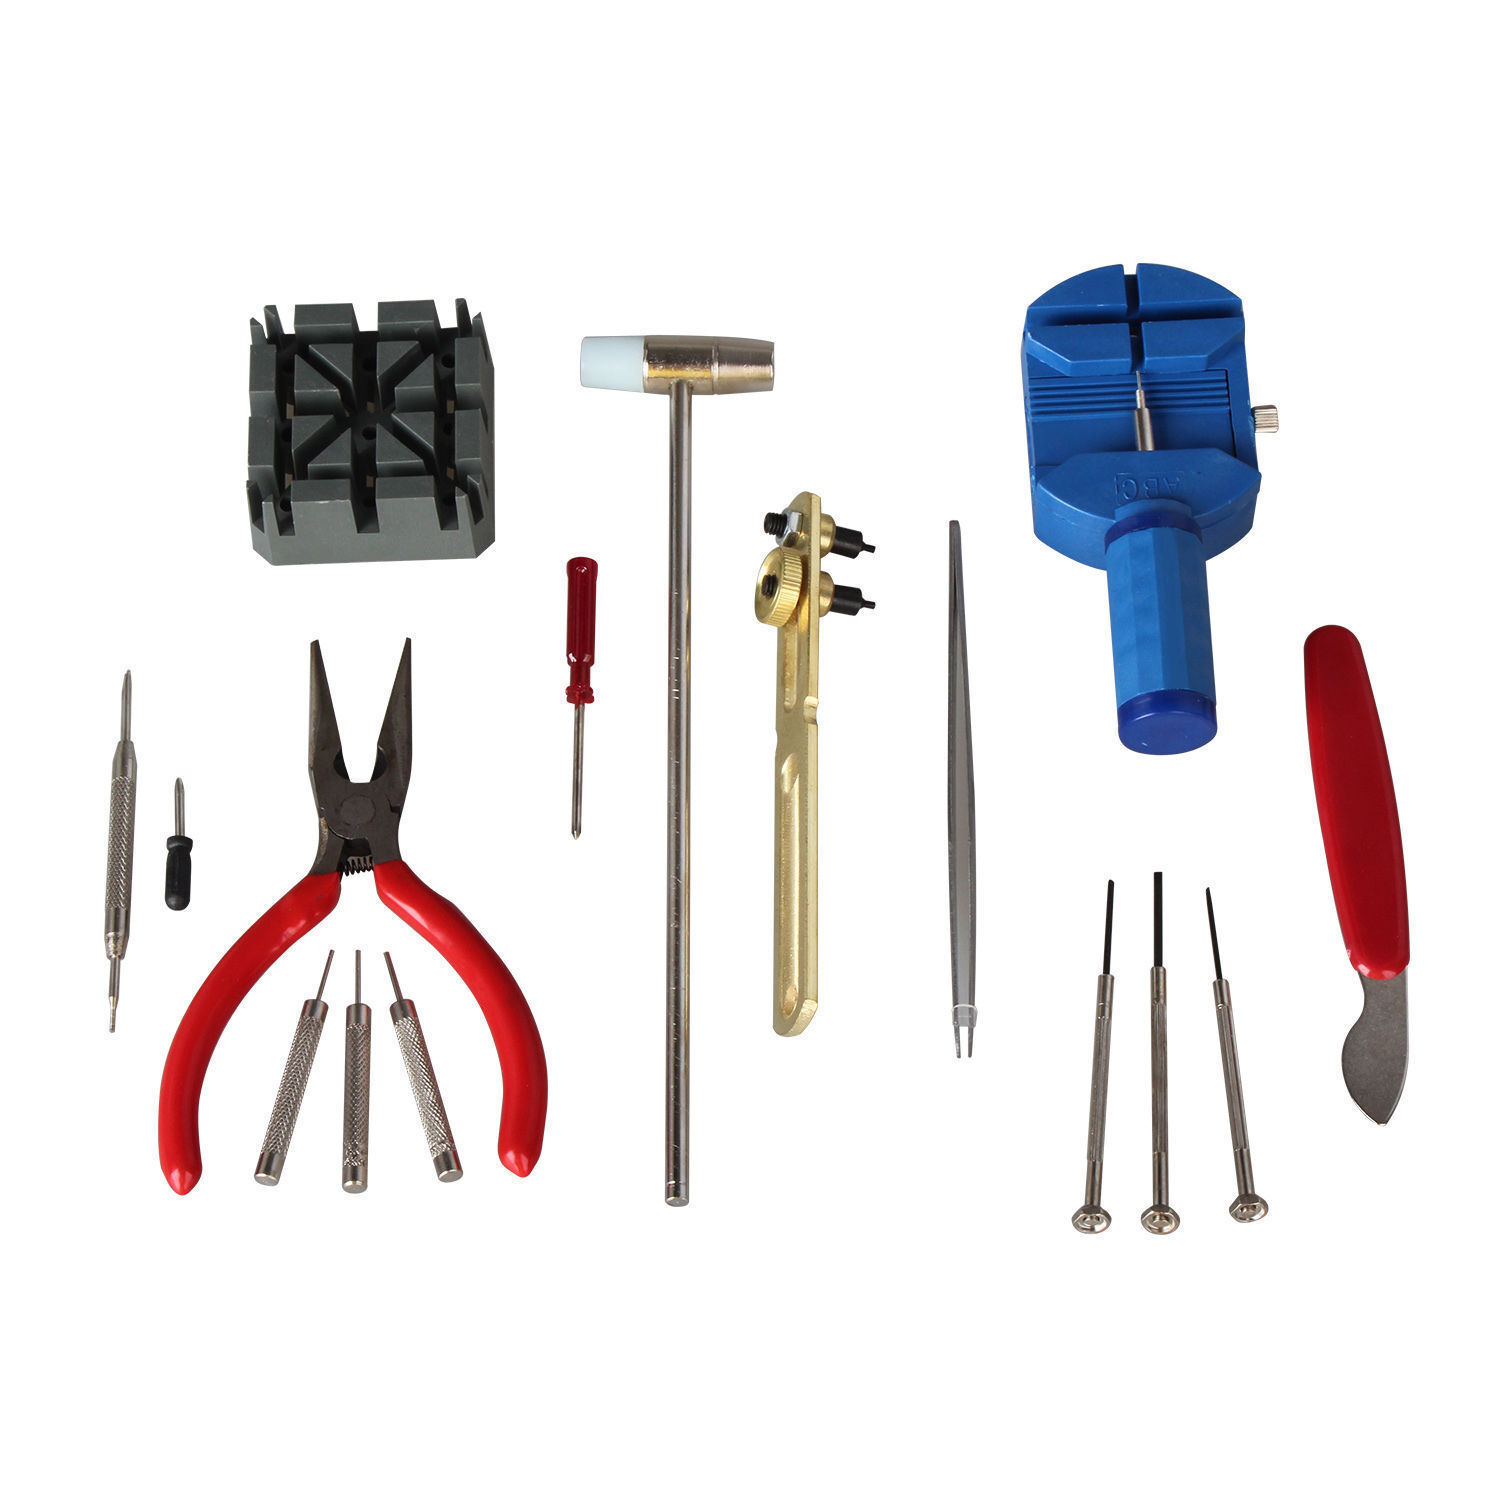 16pcs Watch Repair Tool Kit Link Remover Screwdriver Spring Bar Tool Case Opener Jewelry & Watches